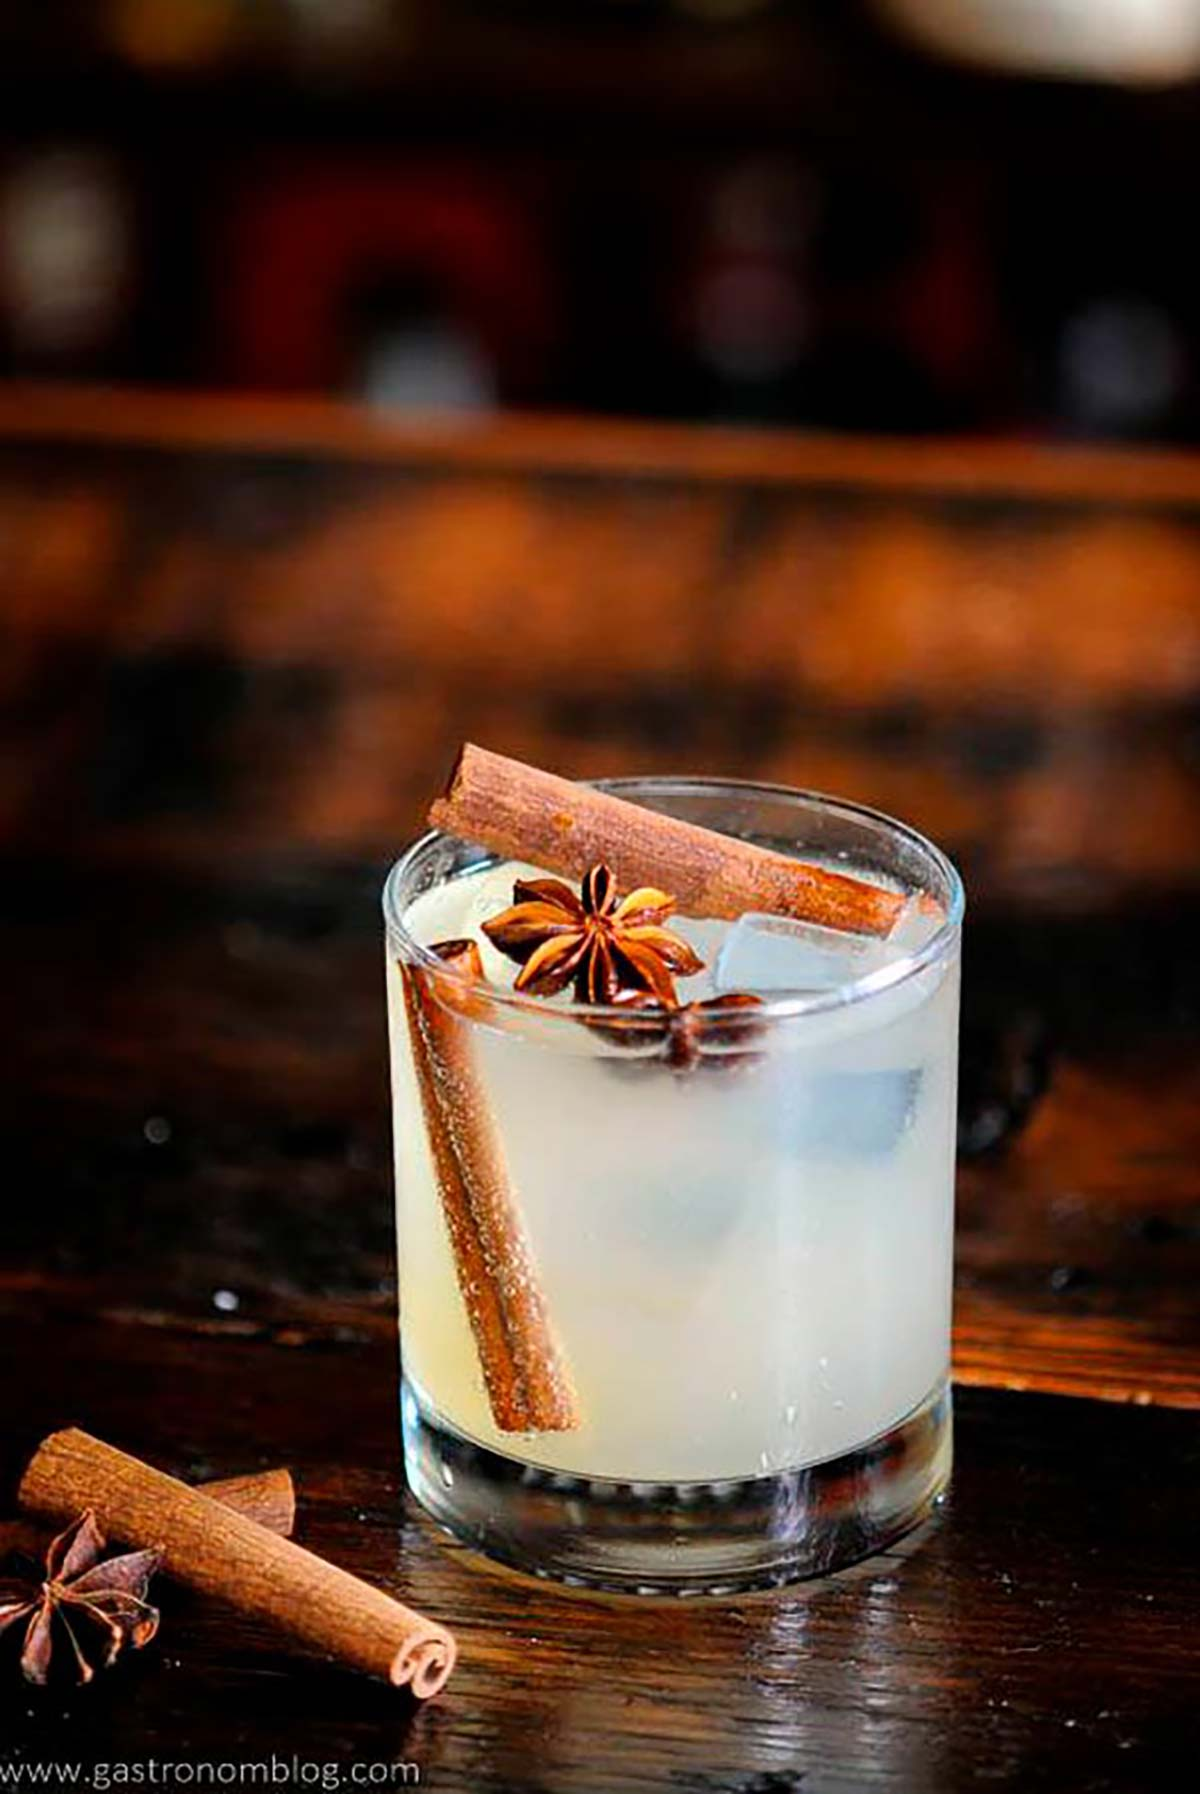 A cocktail garnished with cinnamon sticks and star anise on a table.